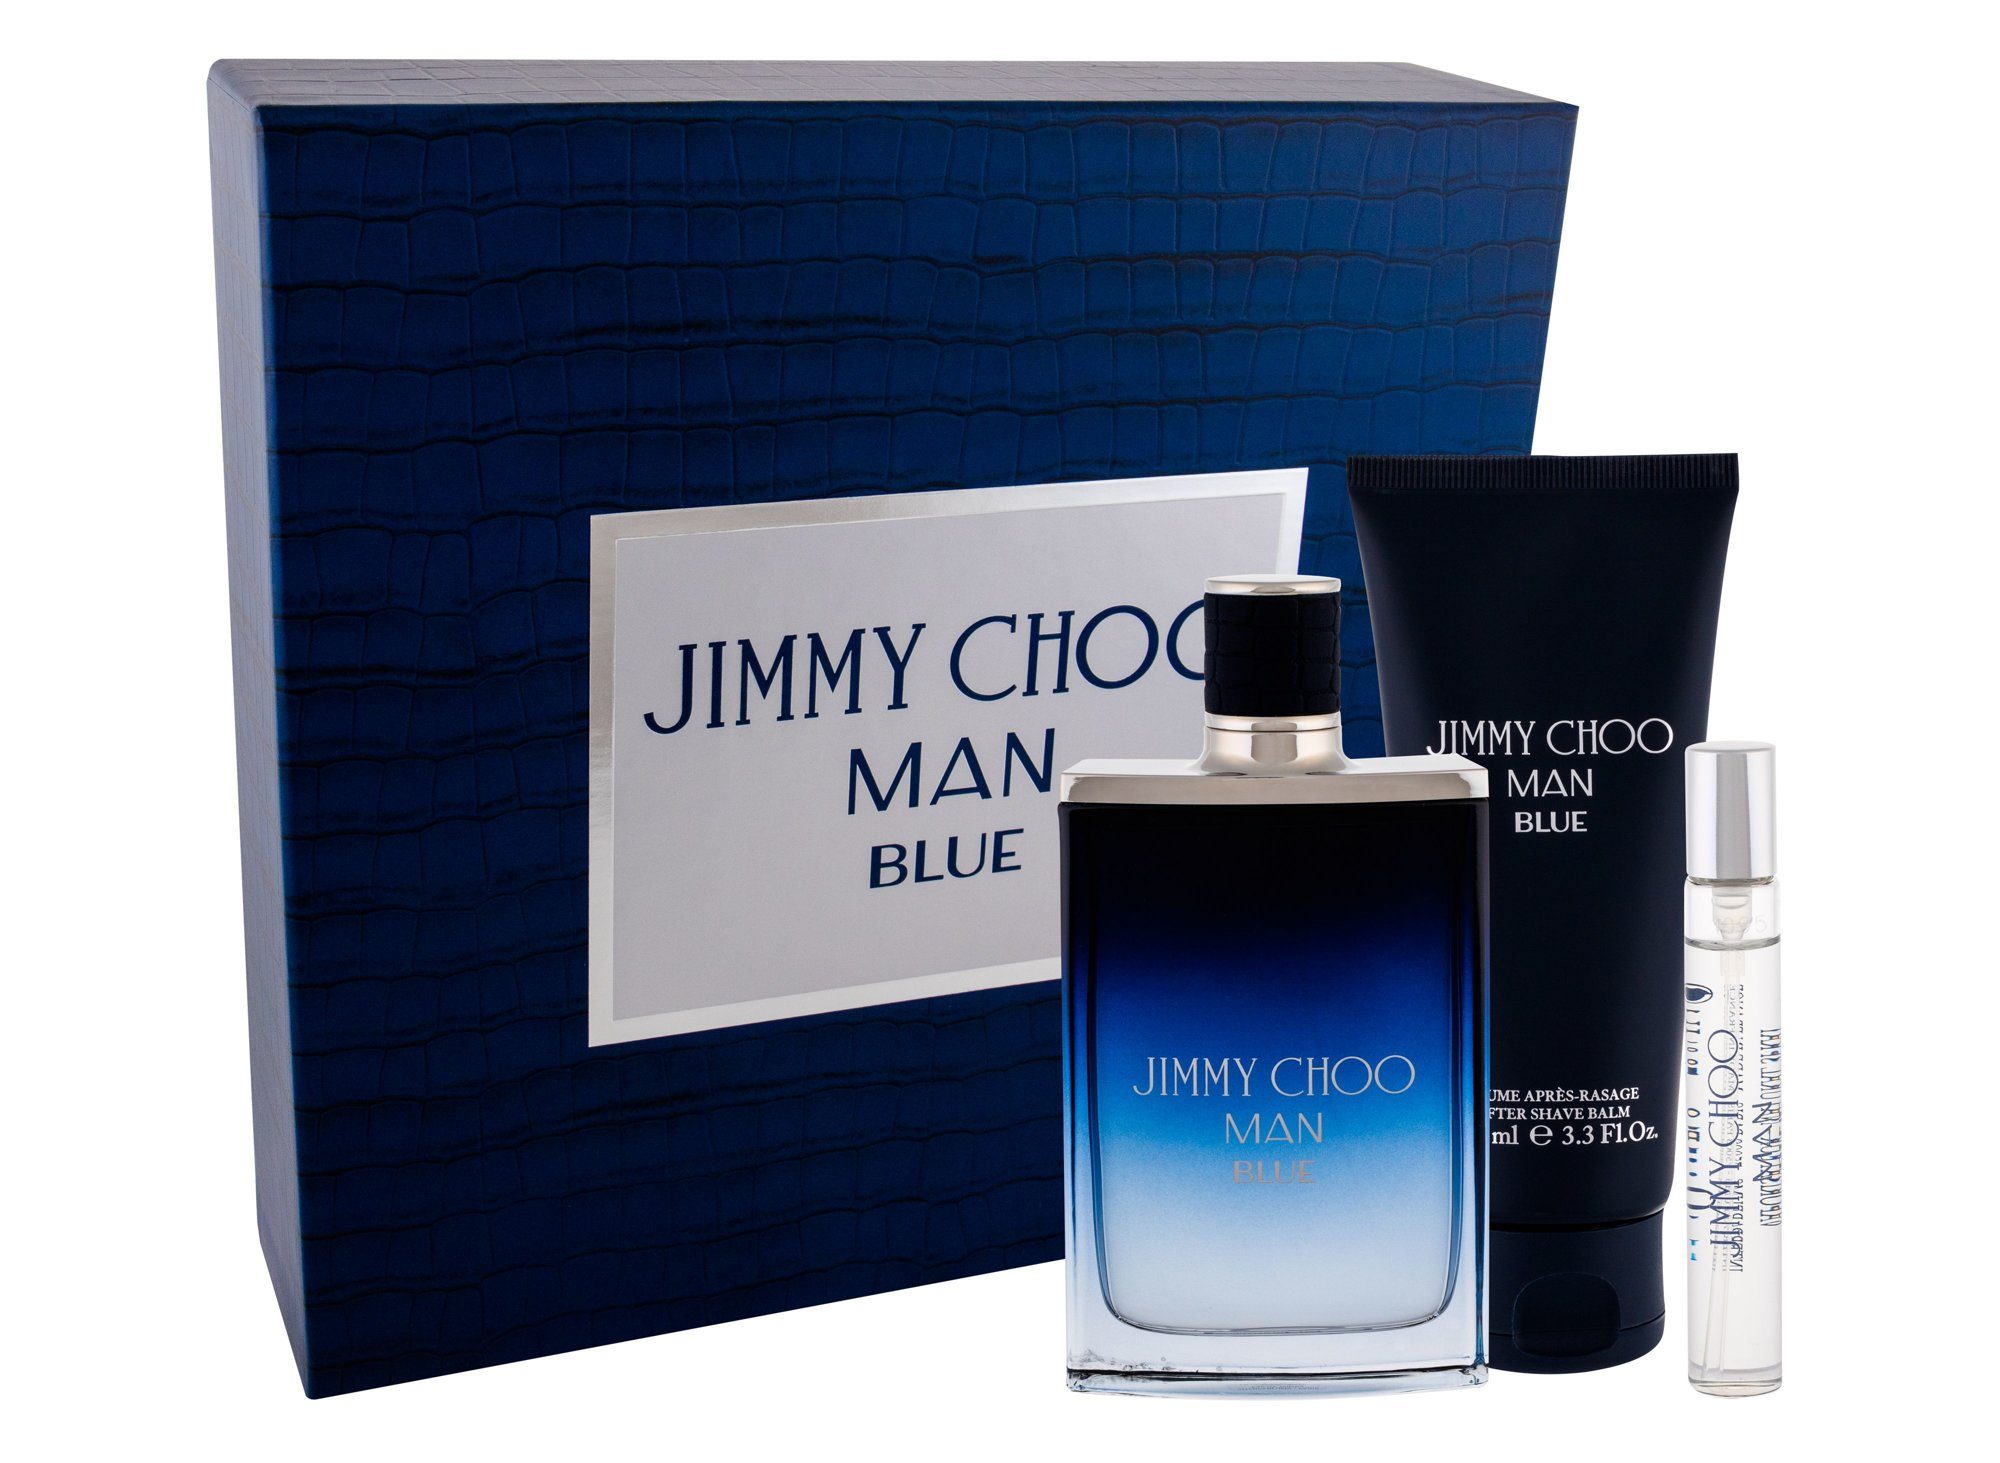 Jimmy Choo Jimmy Choo Man Blue Eau de Toilette 100ml